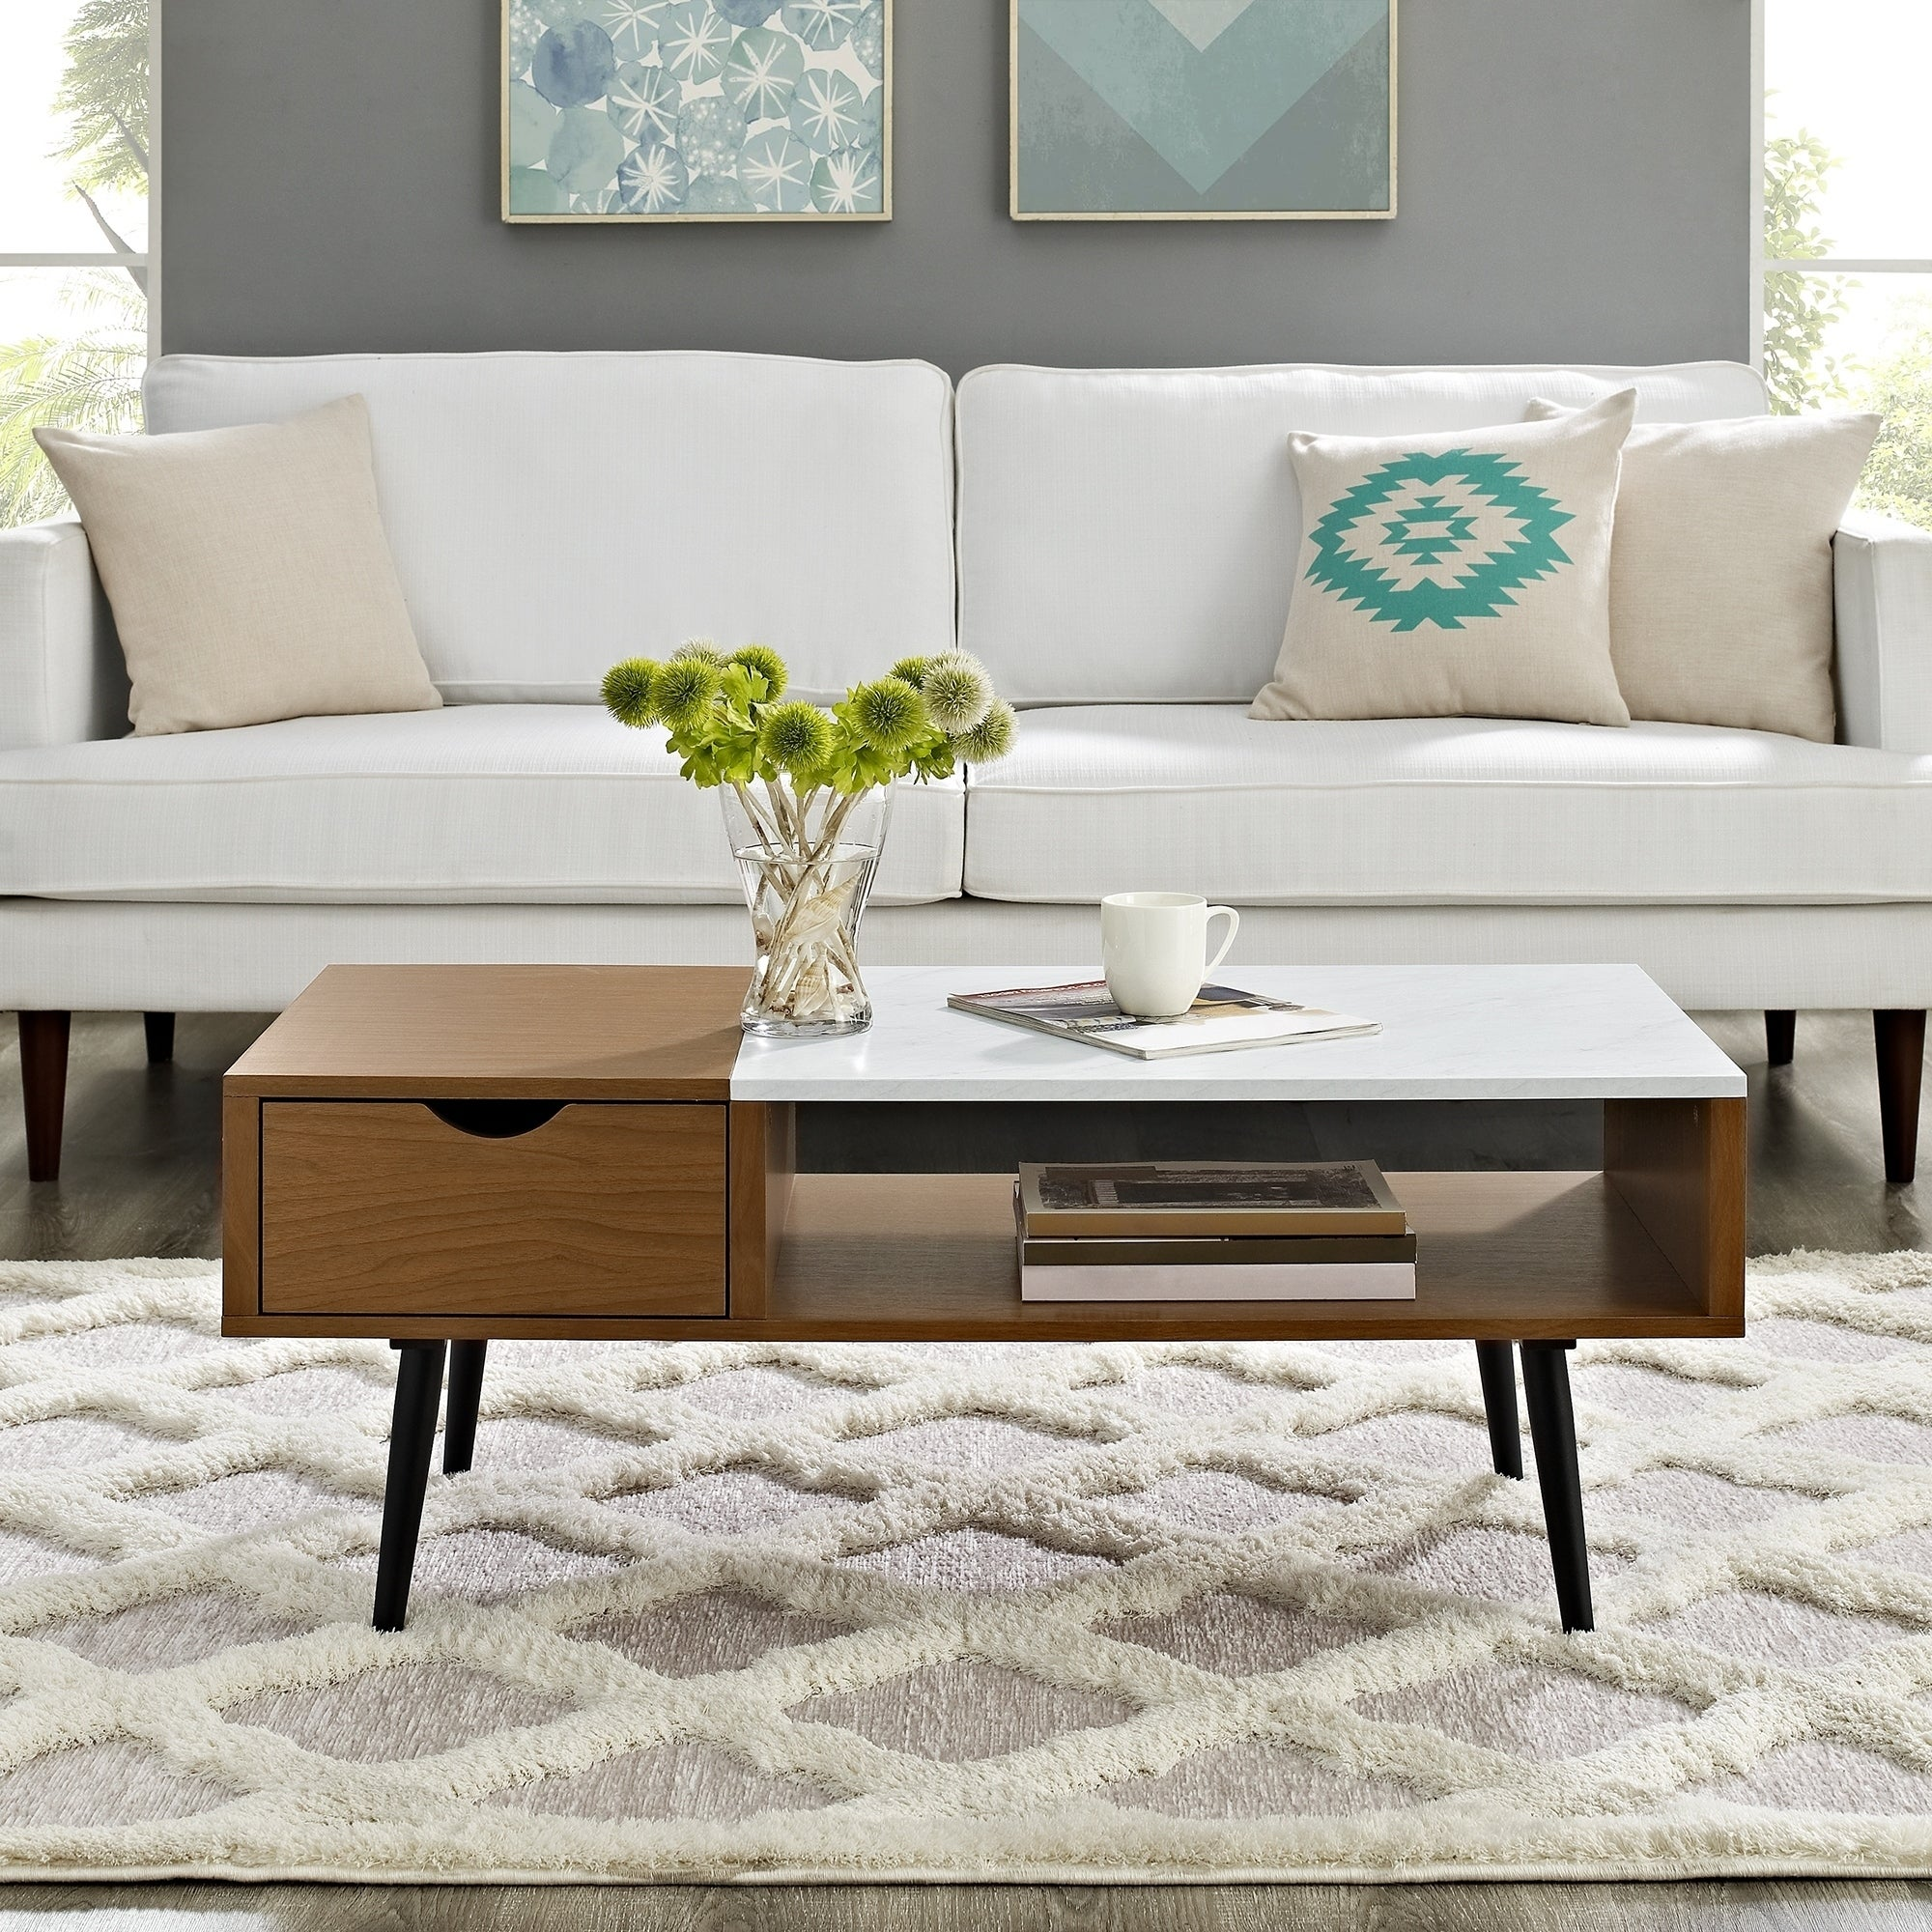 Shop 42 Mid Century Wood And Faux Marble Coffee Table 42 X 22 X